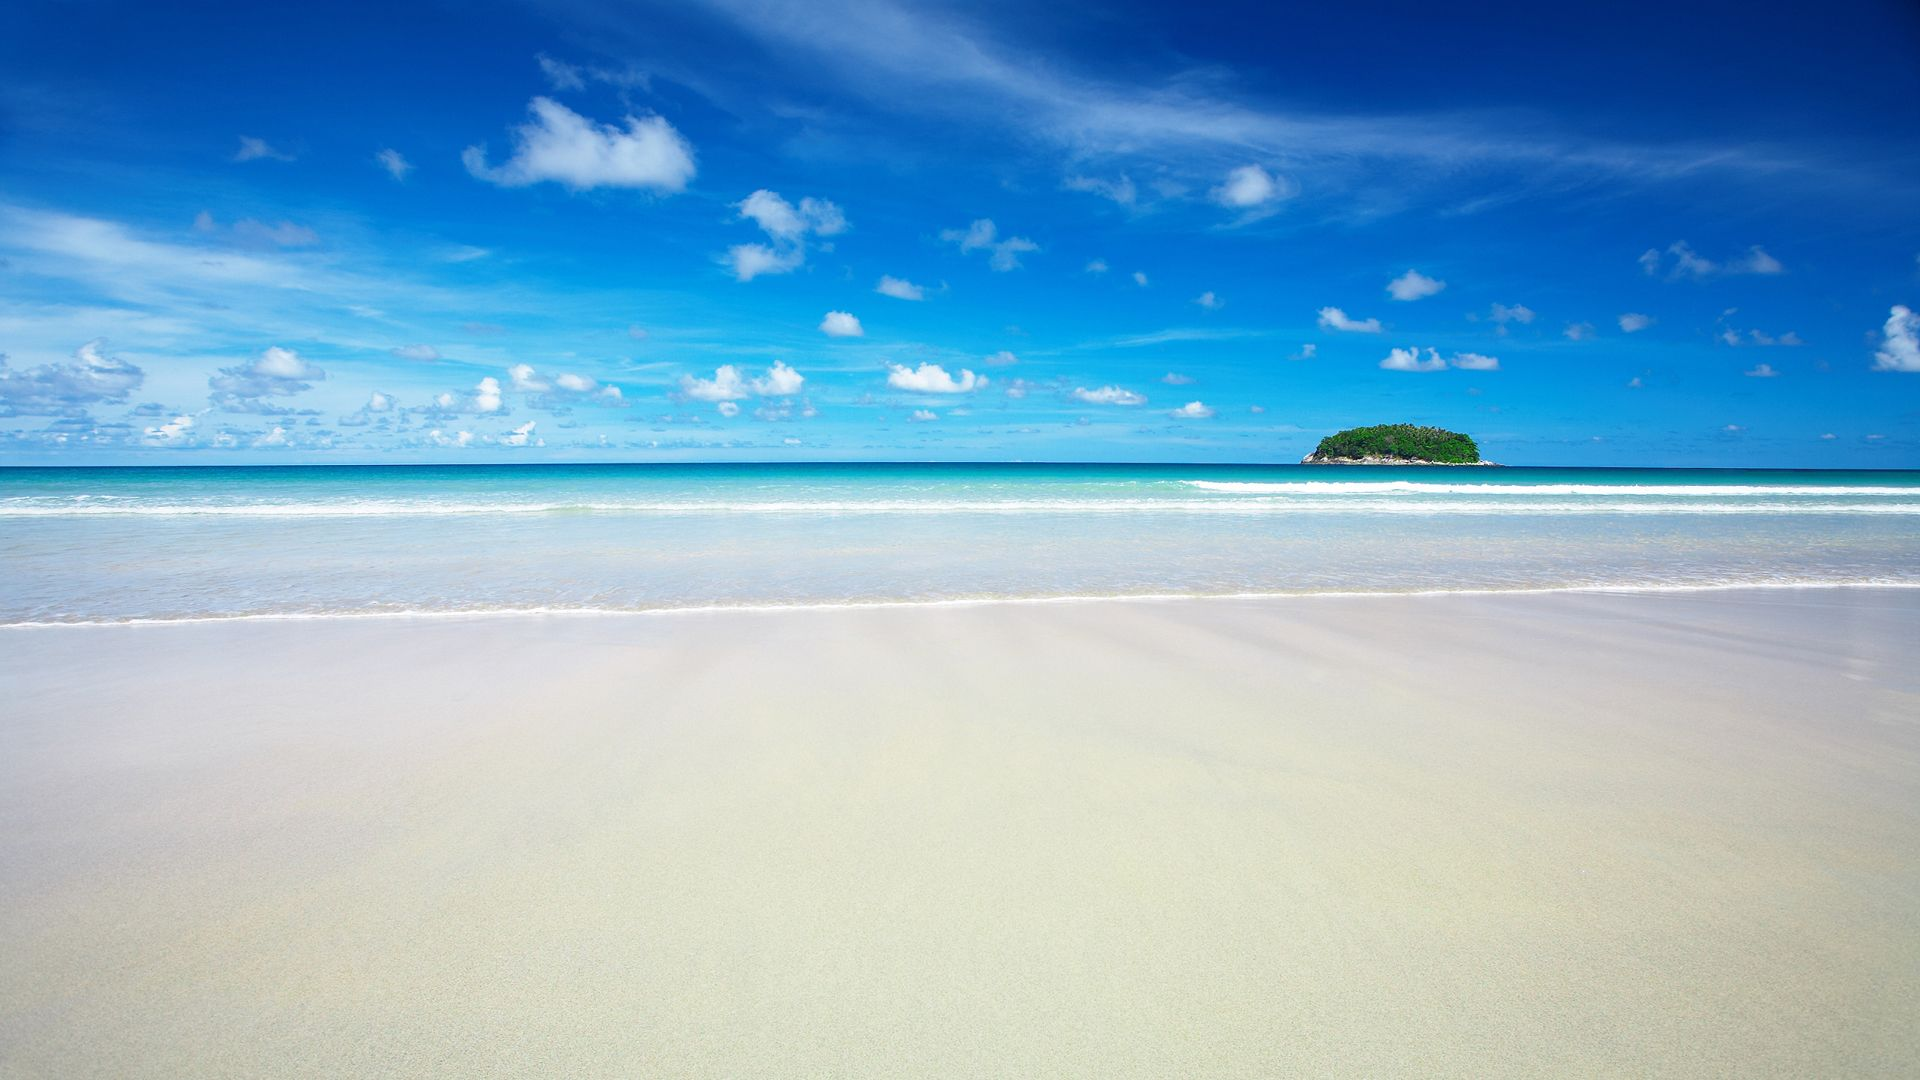 Beach Wall Papers Wallpaper